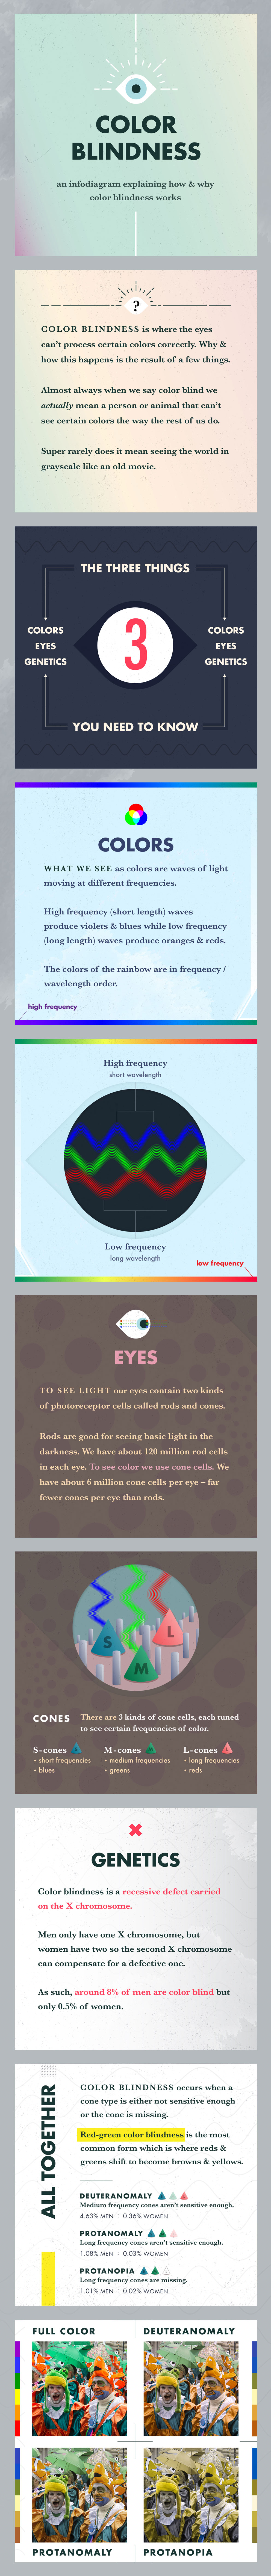 Color Blindness info diagram